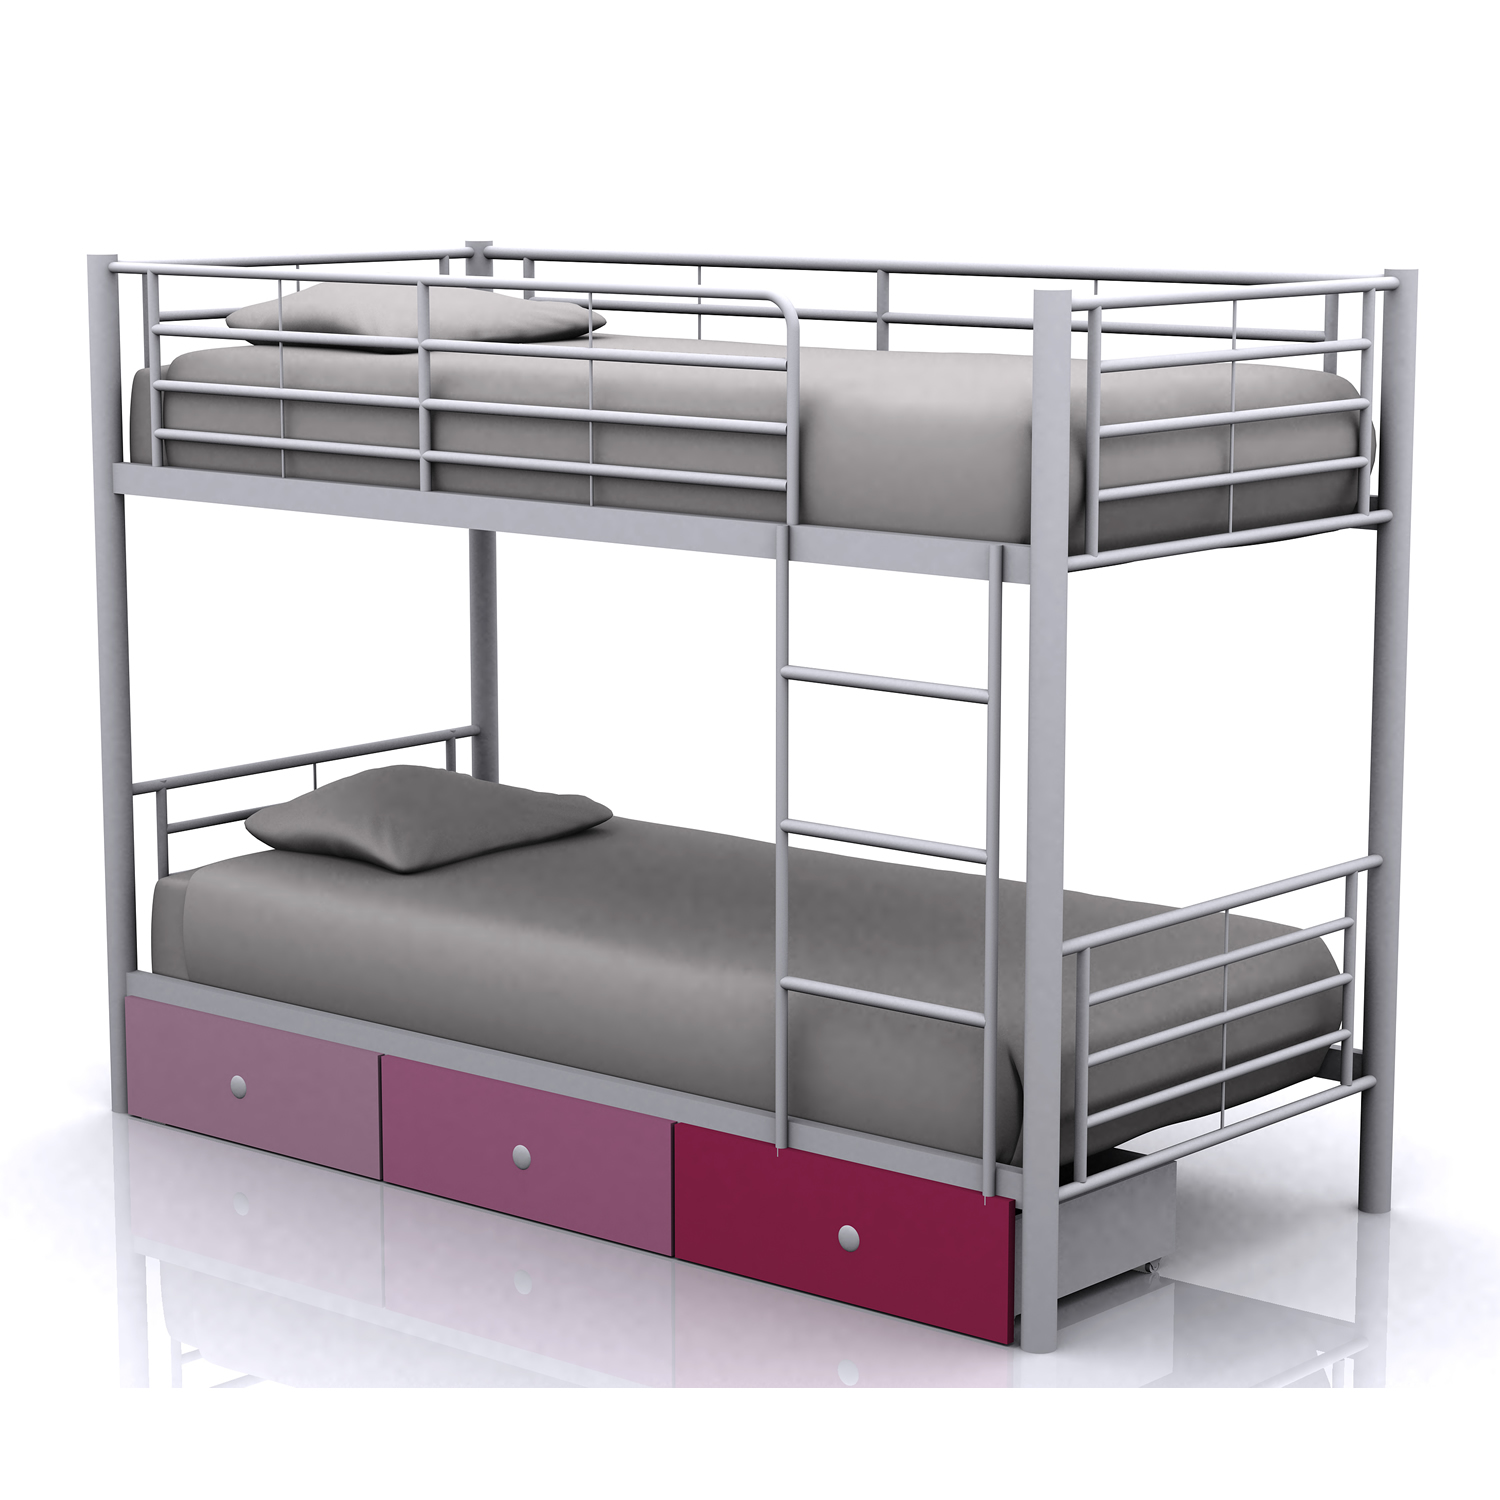 Picture of: Dubai Cheap Metal Double Decker Bus Daybed Collapsible Corner Slide Bunk Bed With Storage Stair Buy Bunk Beds For Hostels Wood Bunk Beds With Trundle Bed Bunk Murphy Bed Product On Alibaba Com